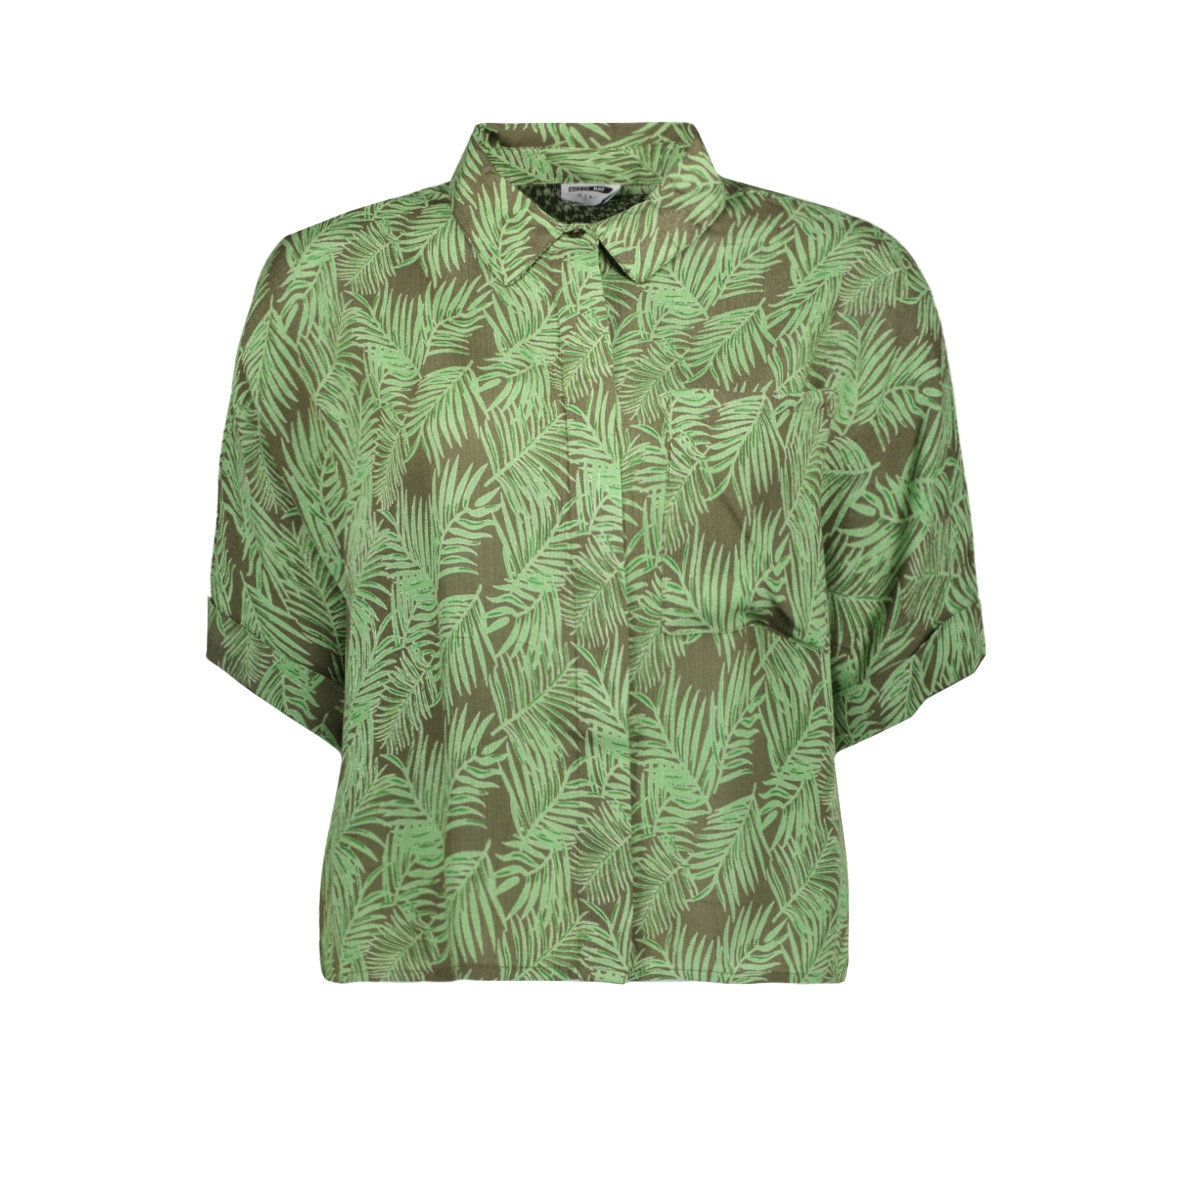 nmflora s/s shirt 27012111 noisy may blouse kalamata/green ash